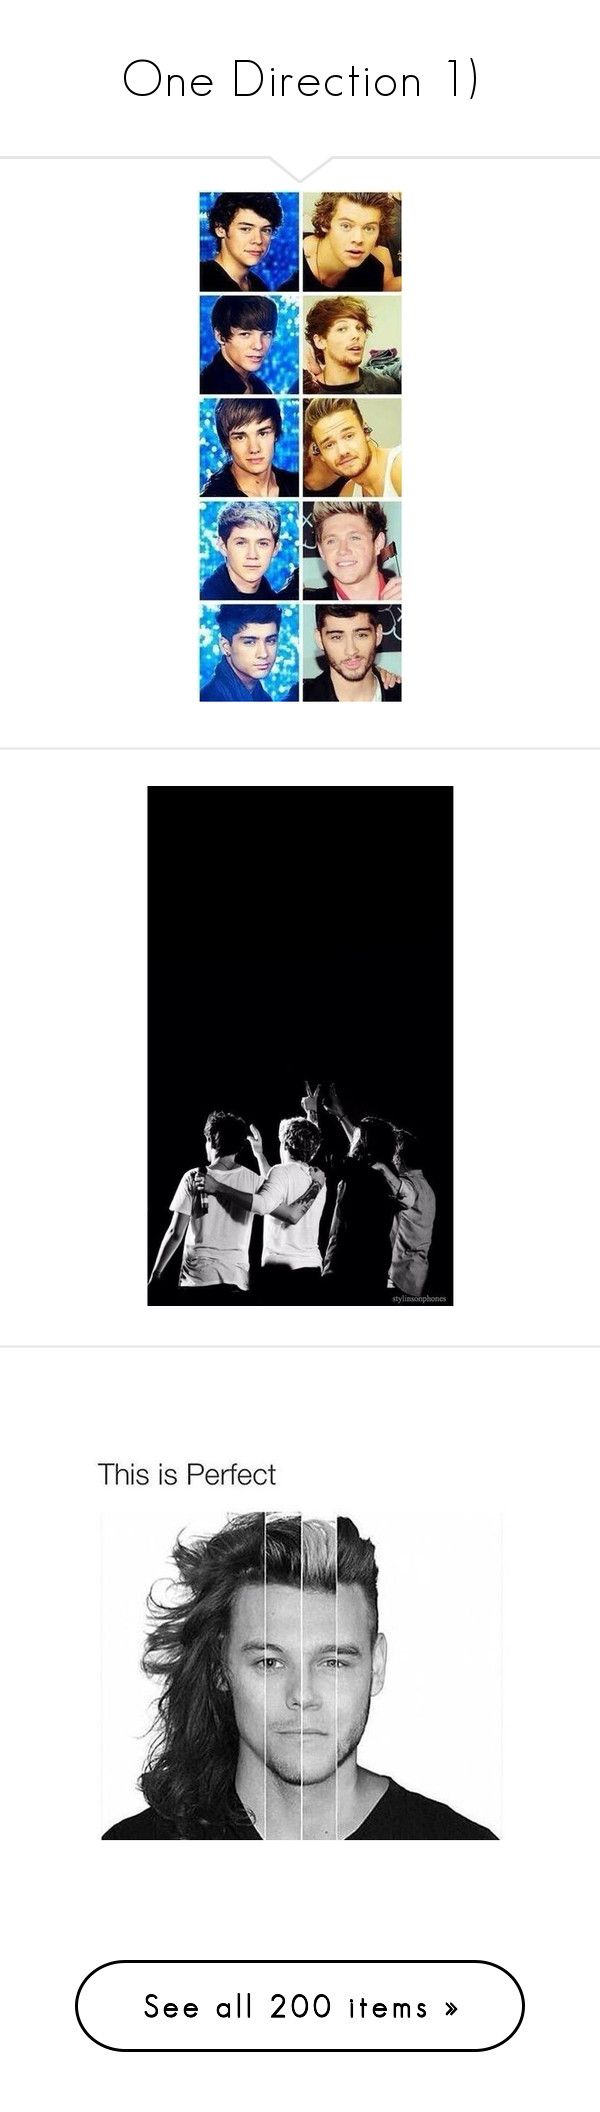 """""""One Direction 1)"""" by harrystaco-wwe ❤ liked on Polyvore featuring tops, t-shirts, white t shirt, white top, retro t shirts, white tee, retro tops, retro tees, one direction and crew-neck shirts"""